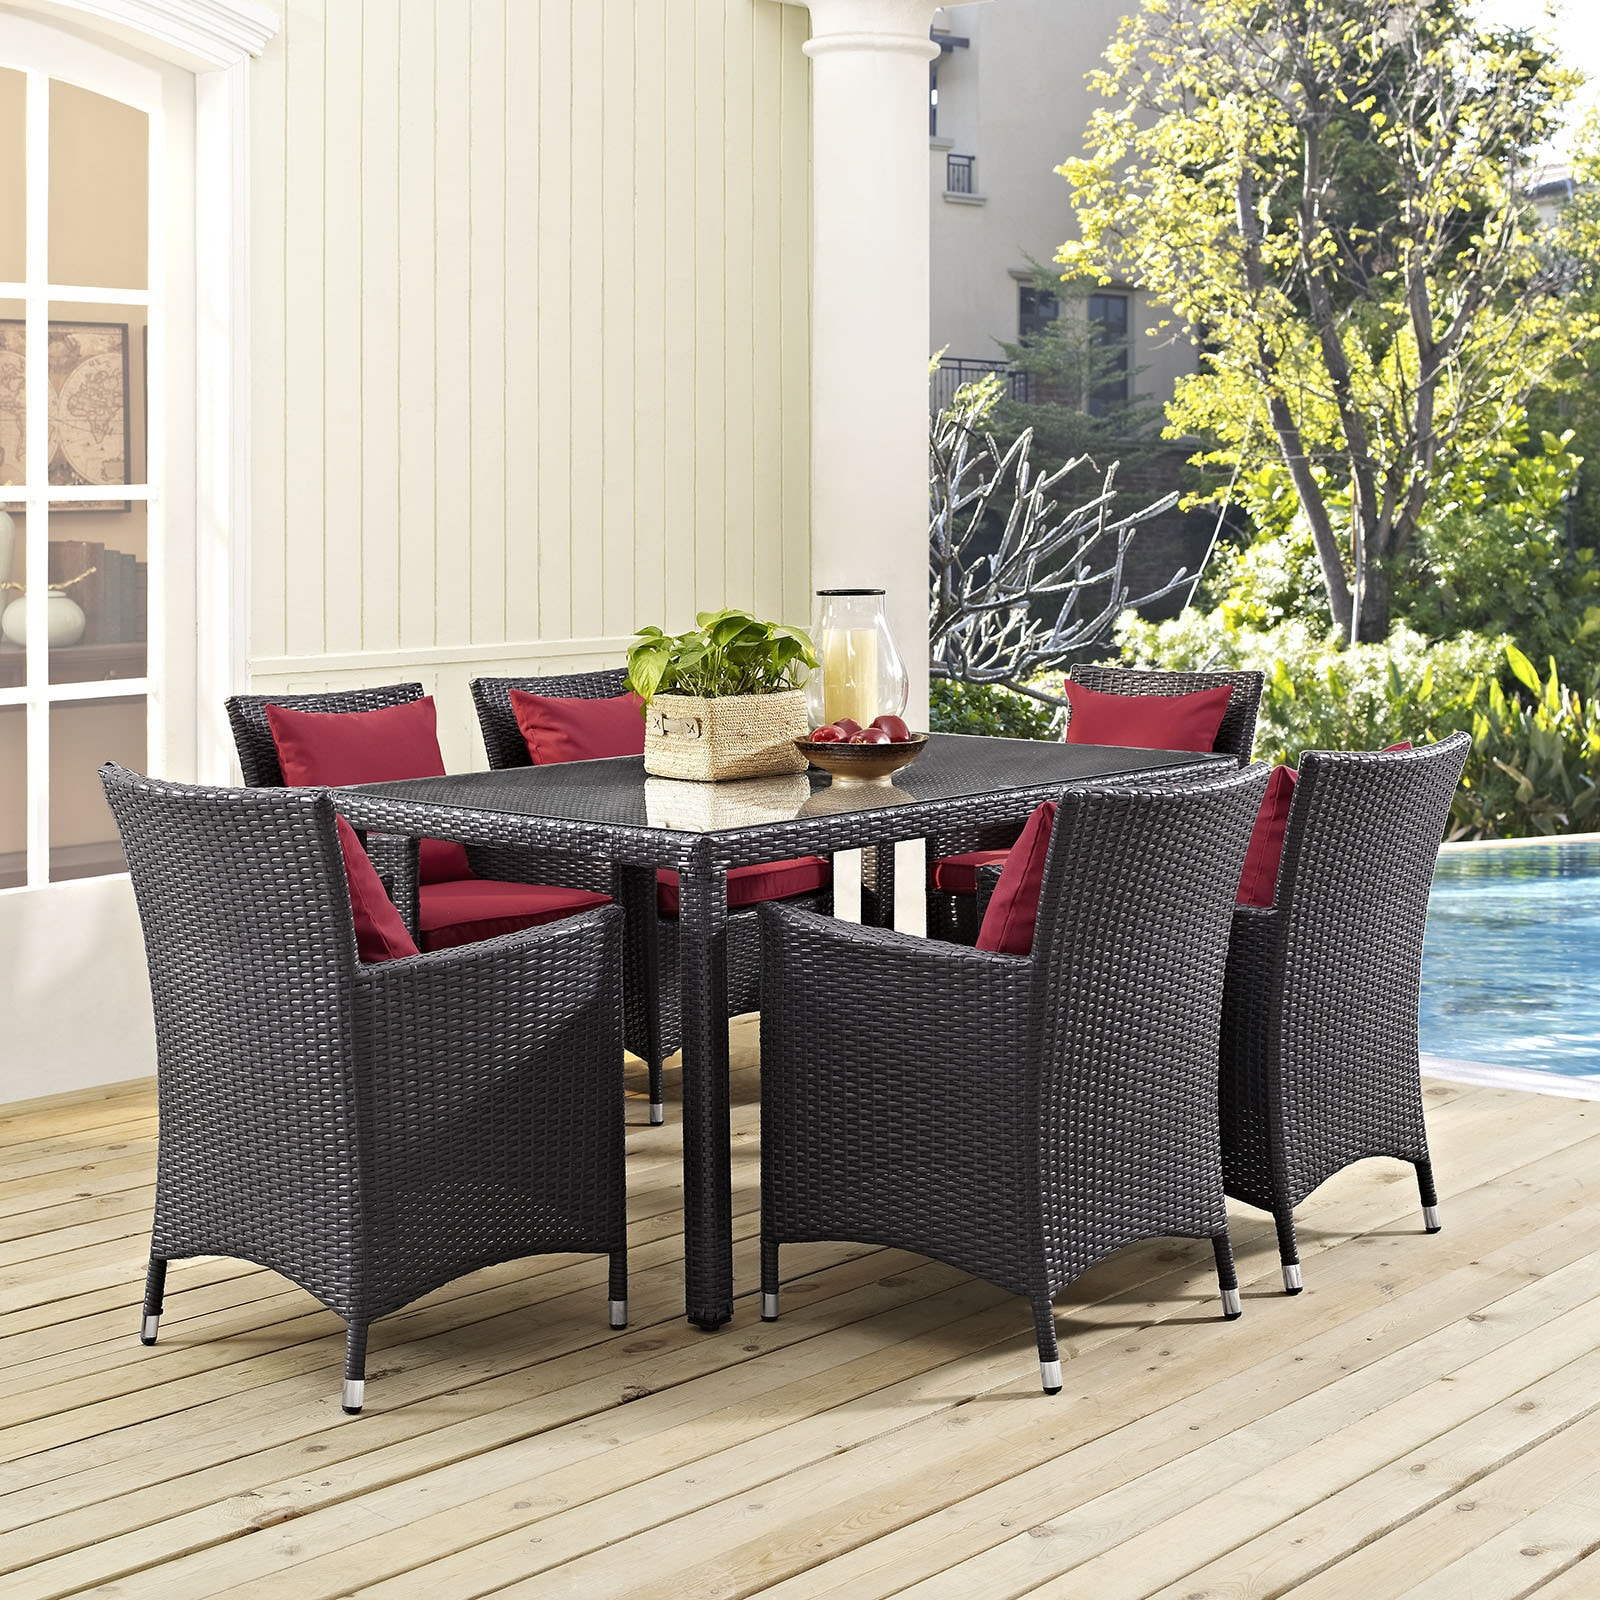 patio set owlee piece dining lee tables table ow cambria